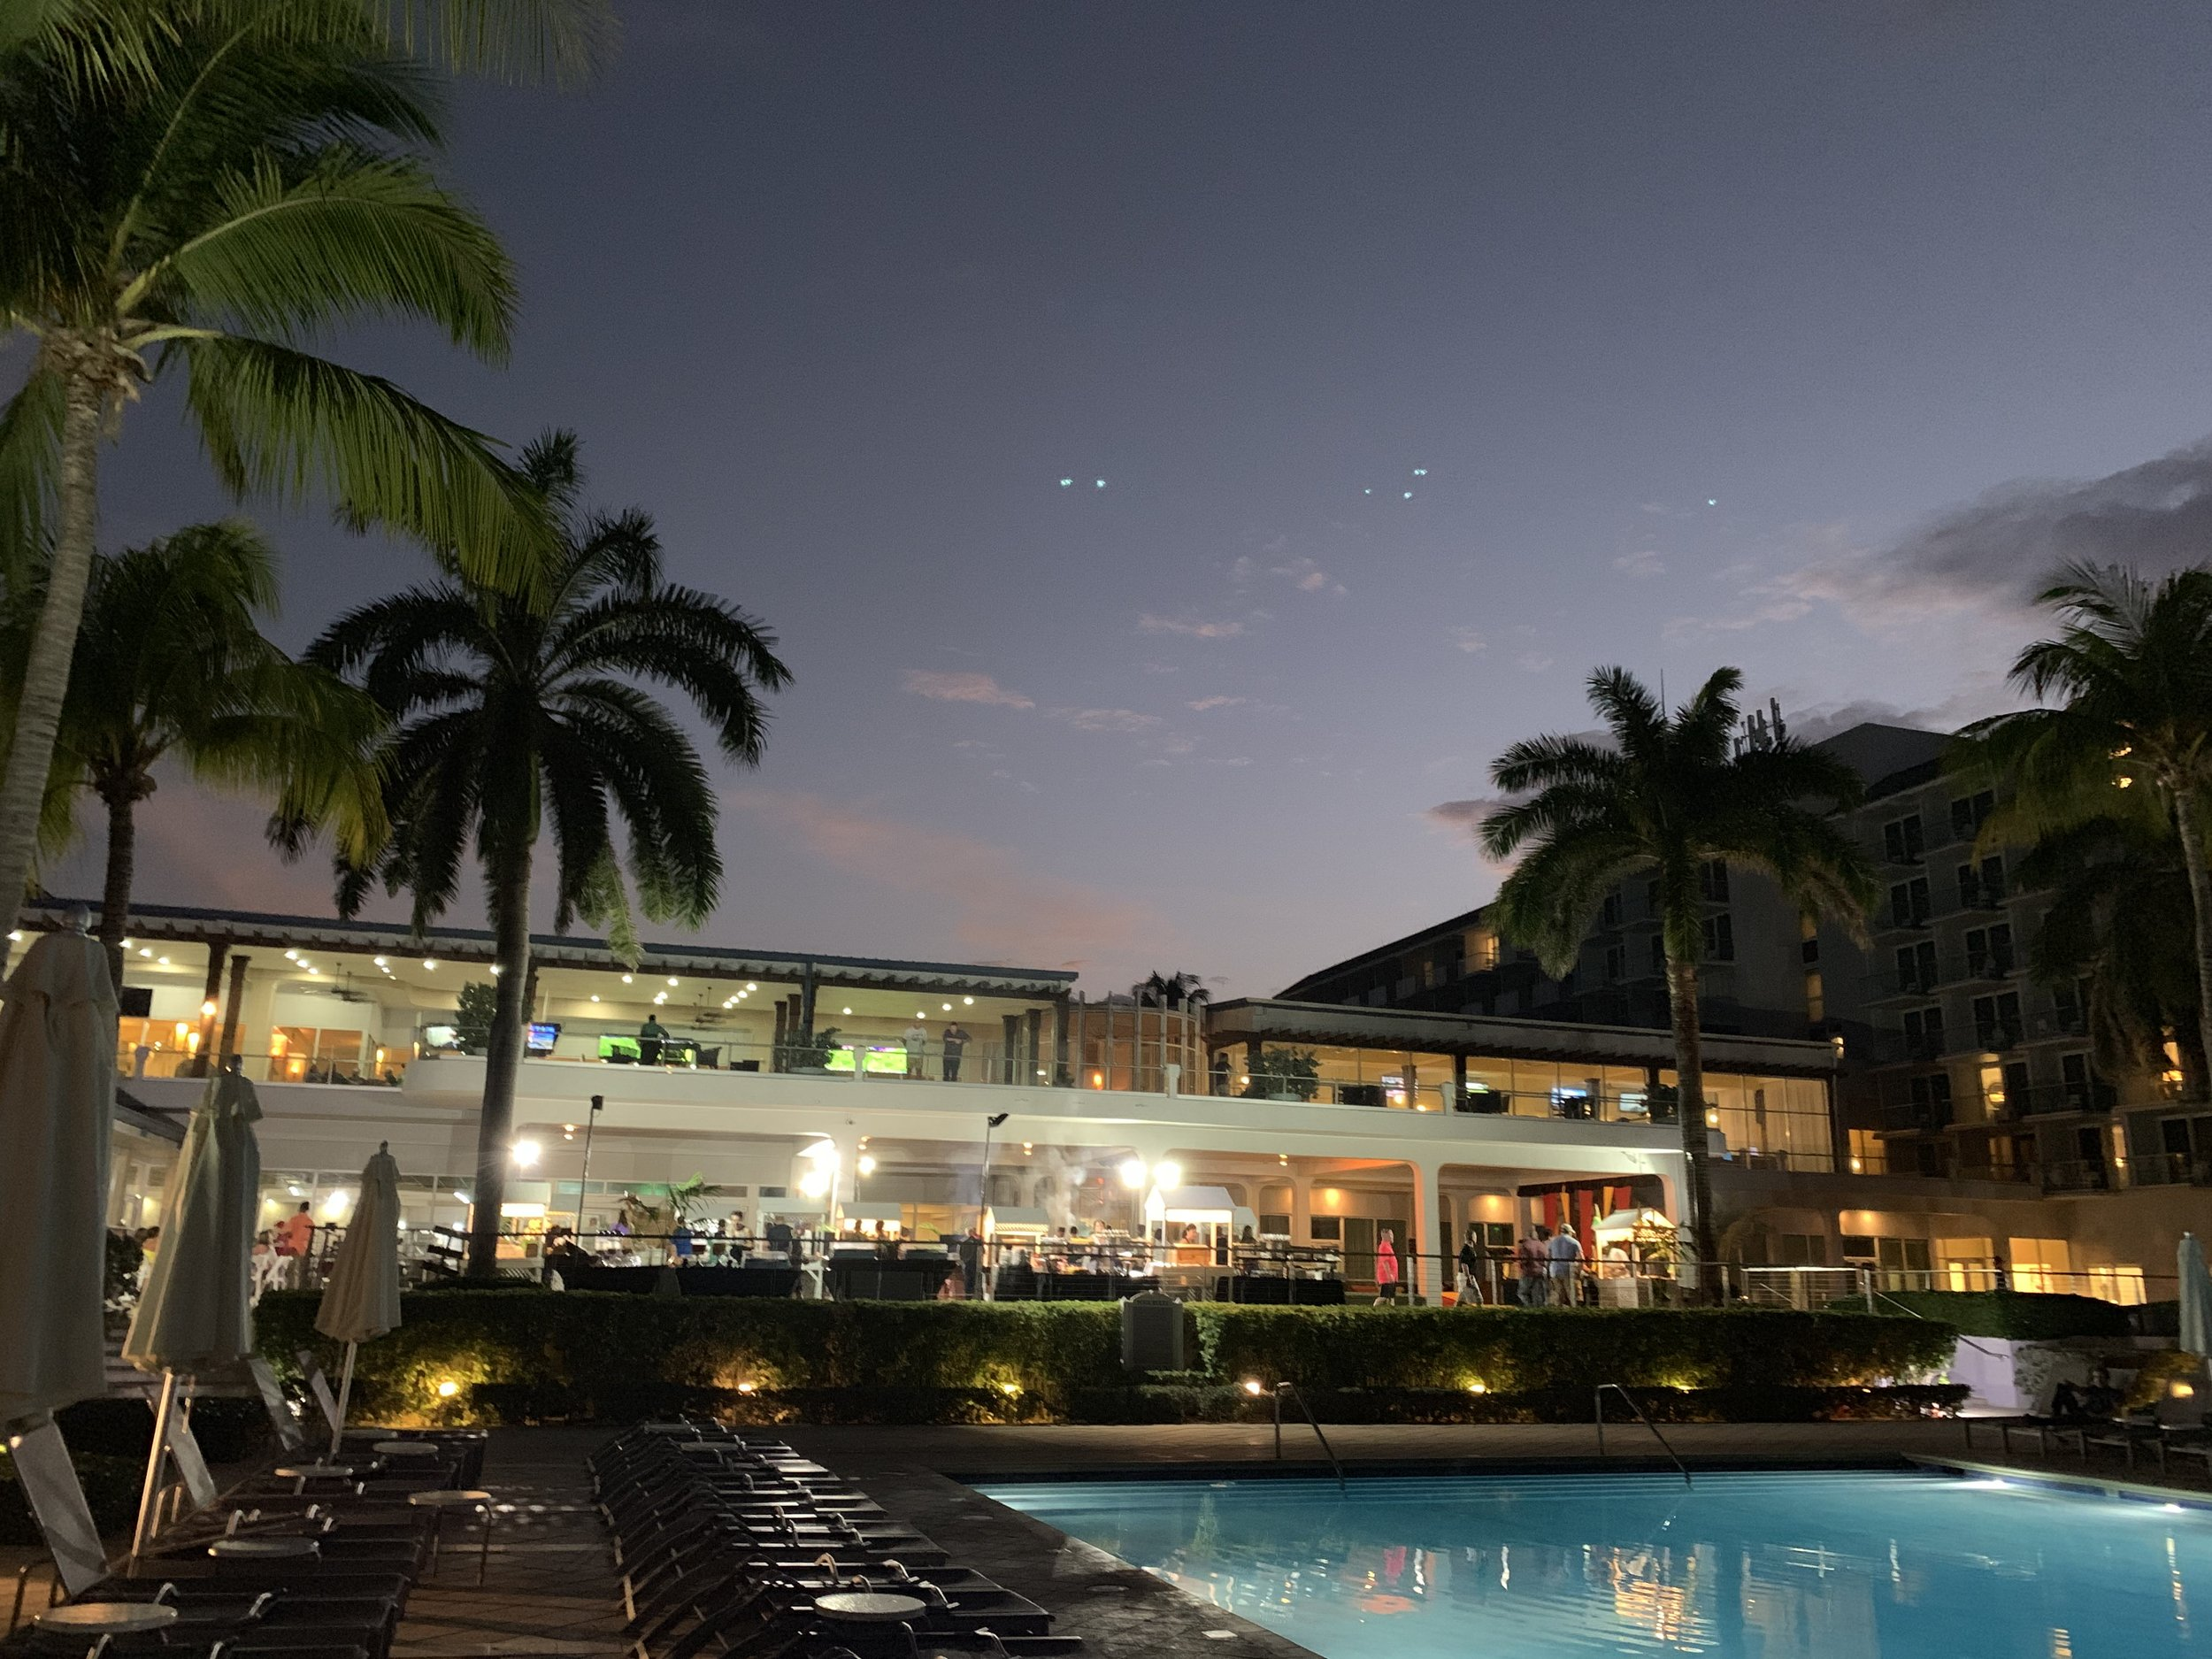 Evening view of the main building from the main pool